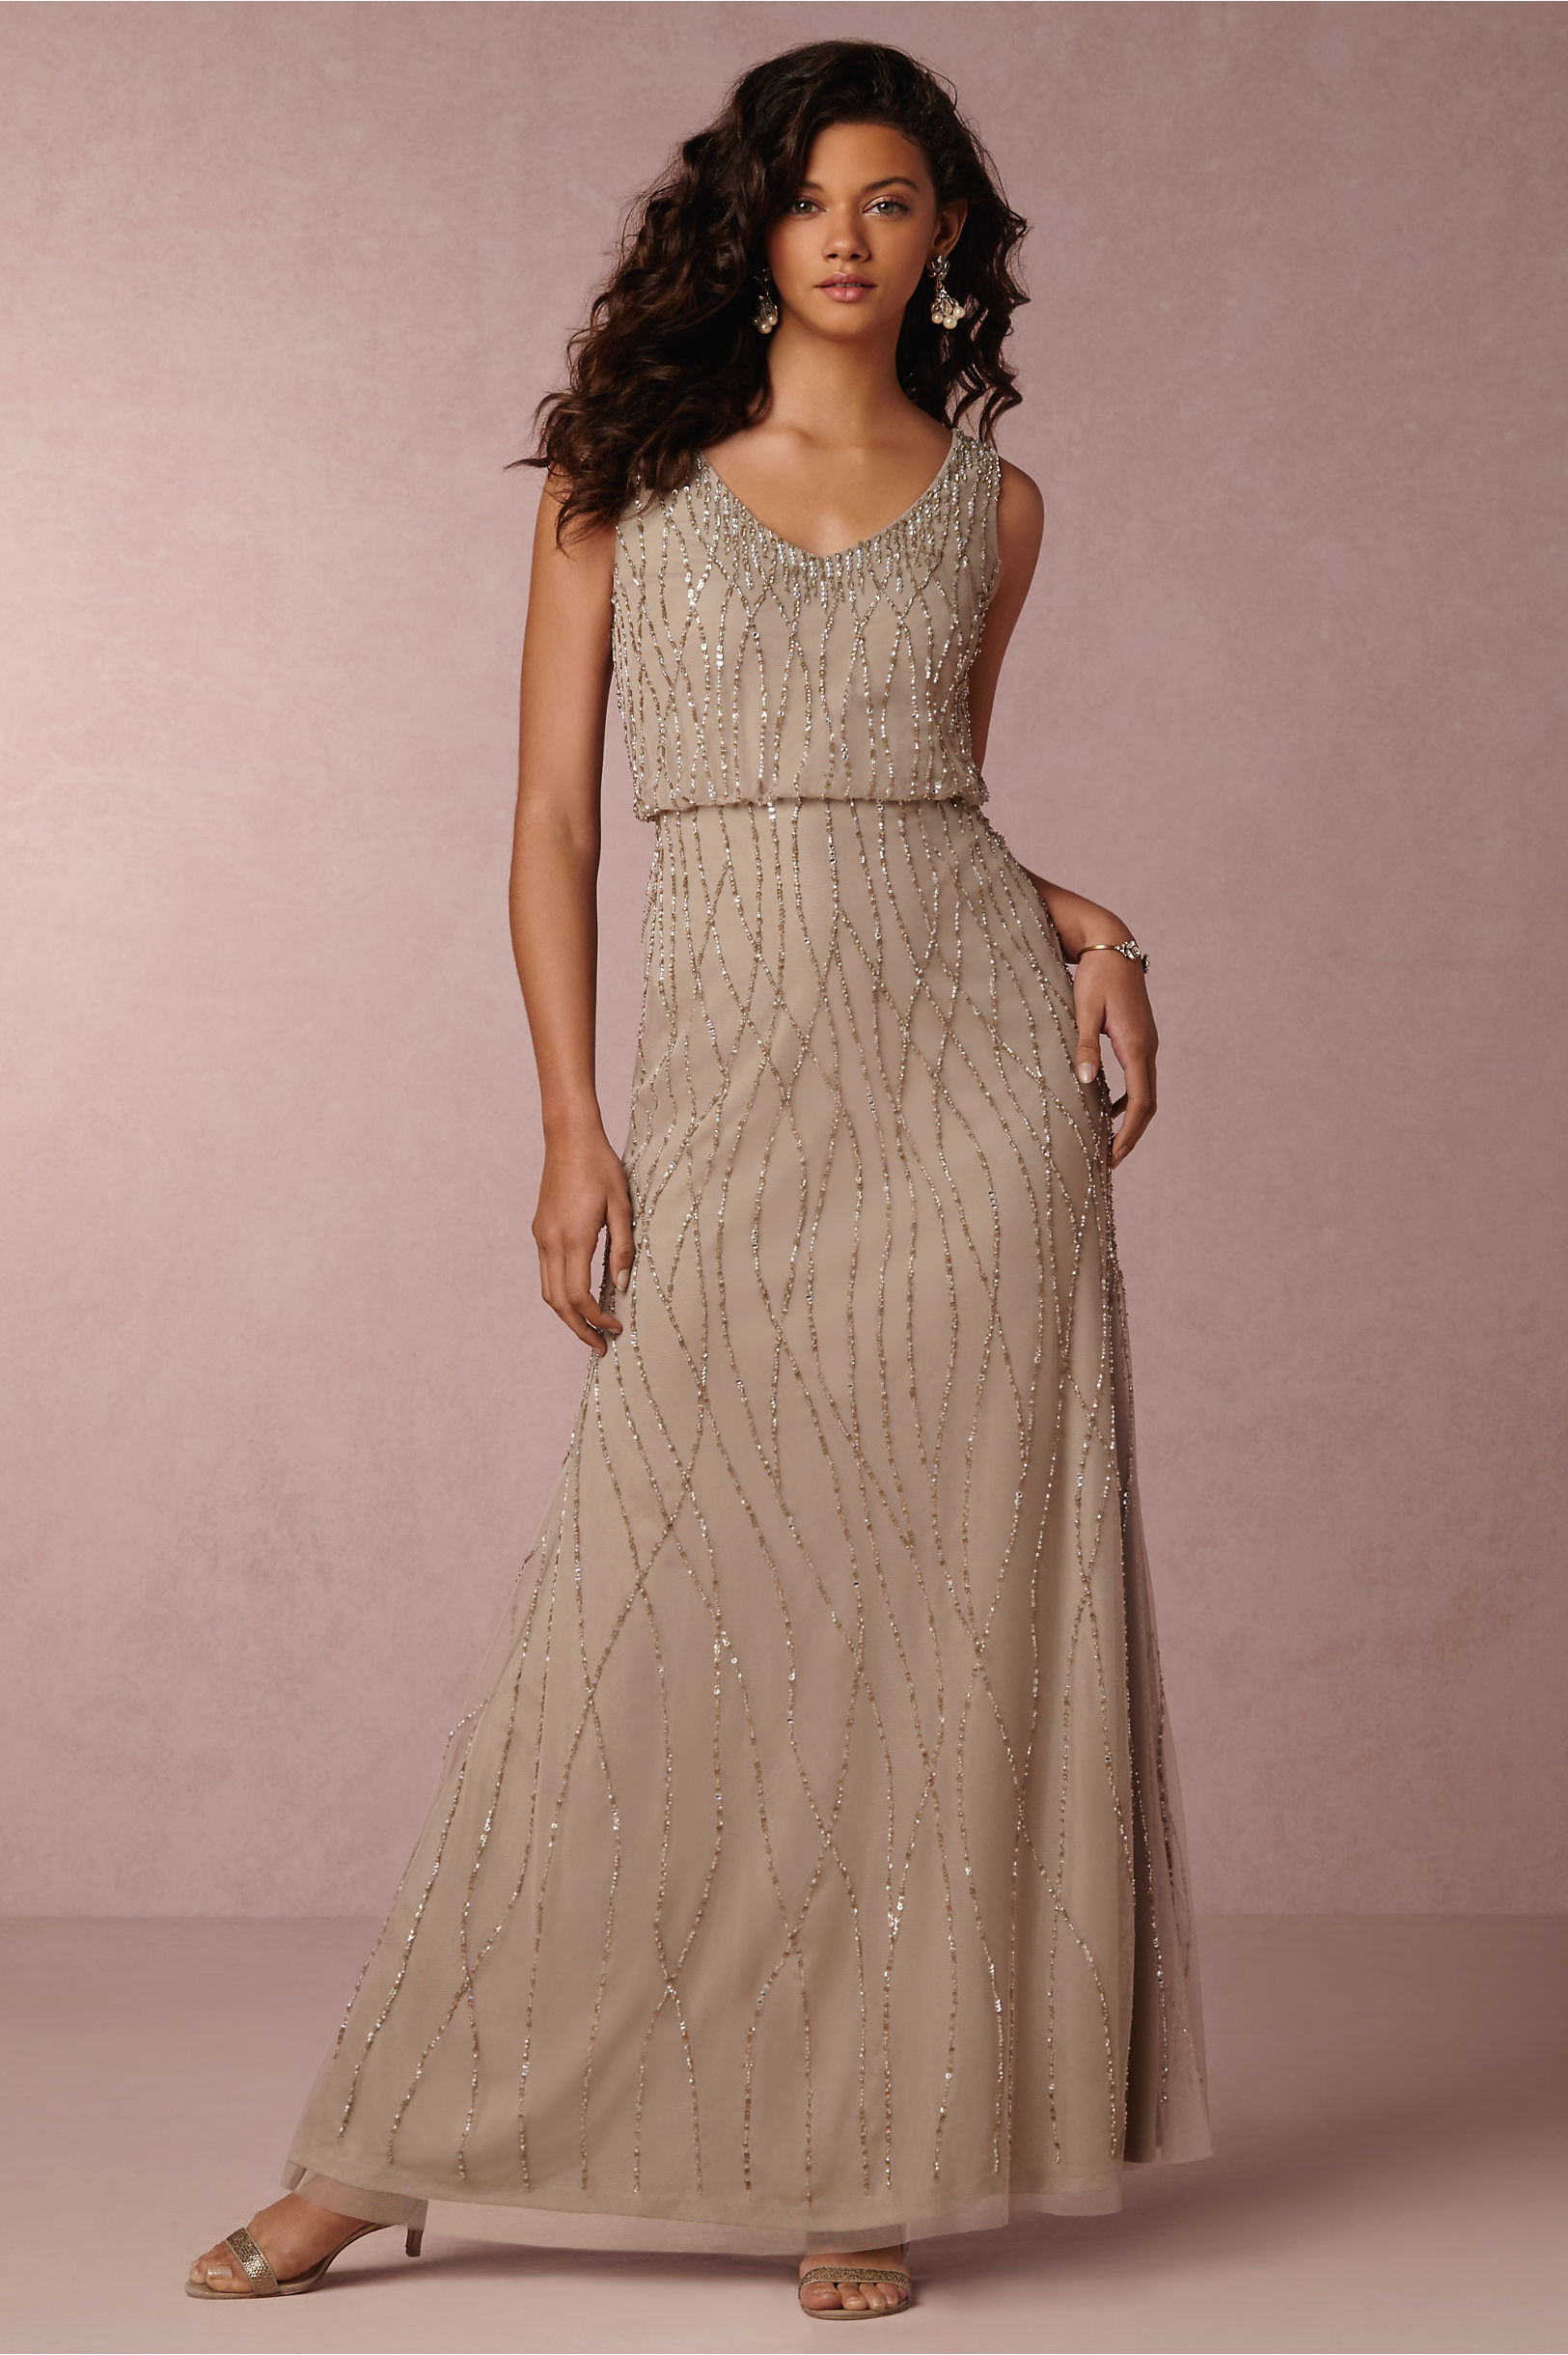 brooklyn dress in dresses party dresses at bhldn. Black Bedroom Furniture Sets. Home Design Ideas